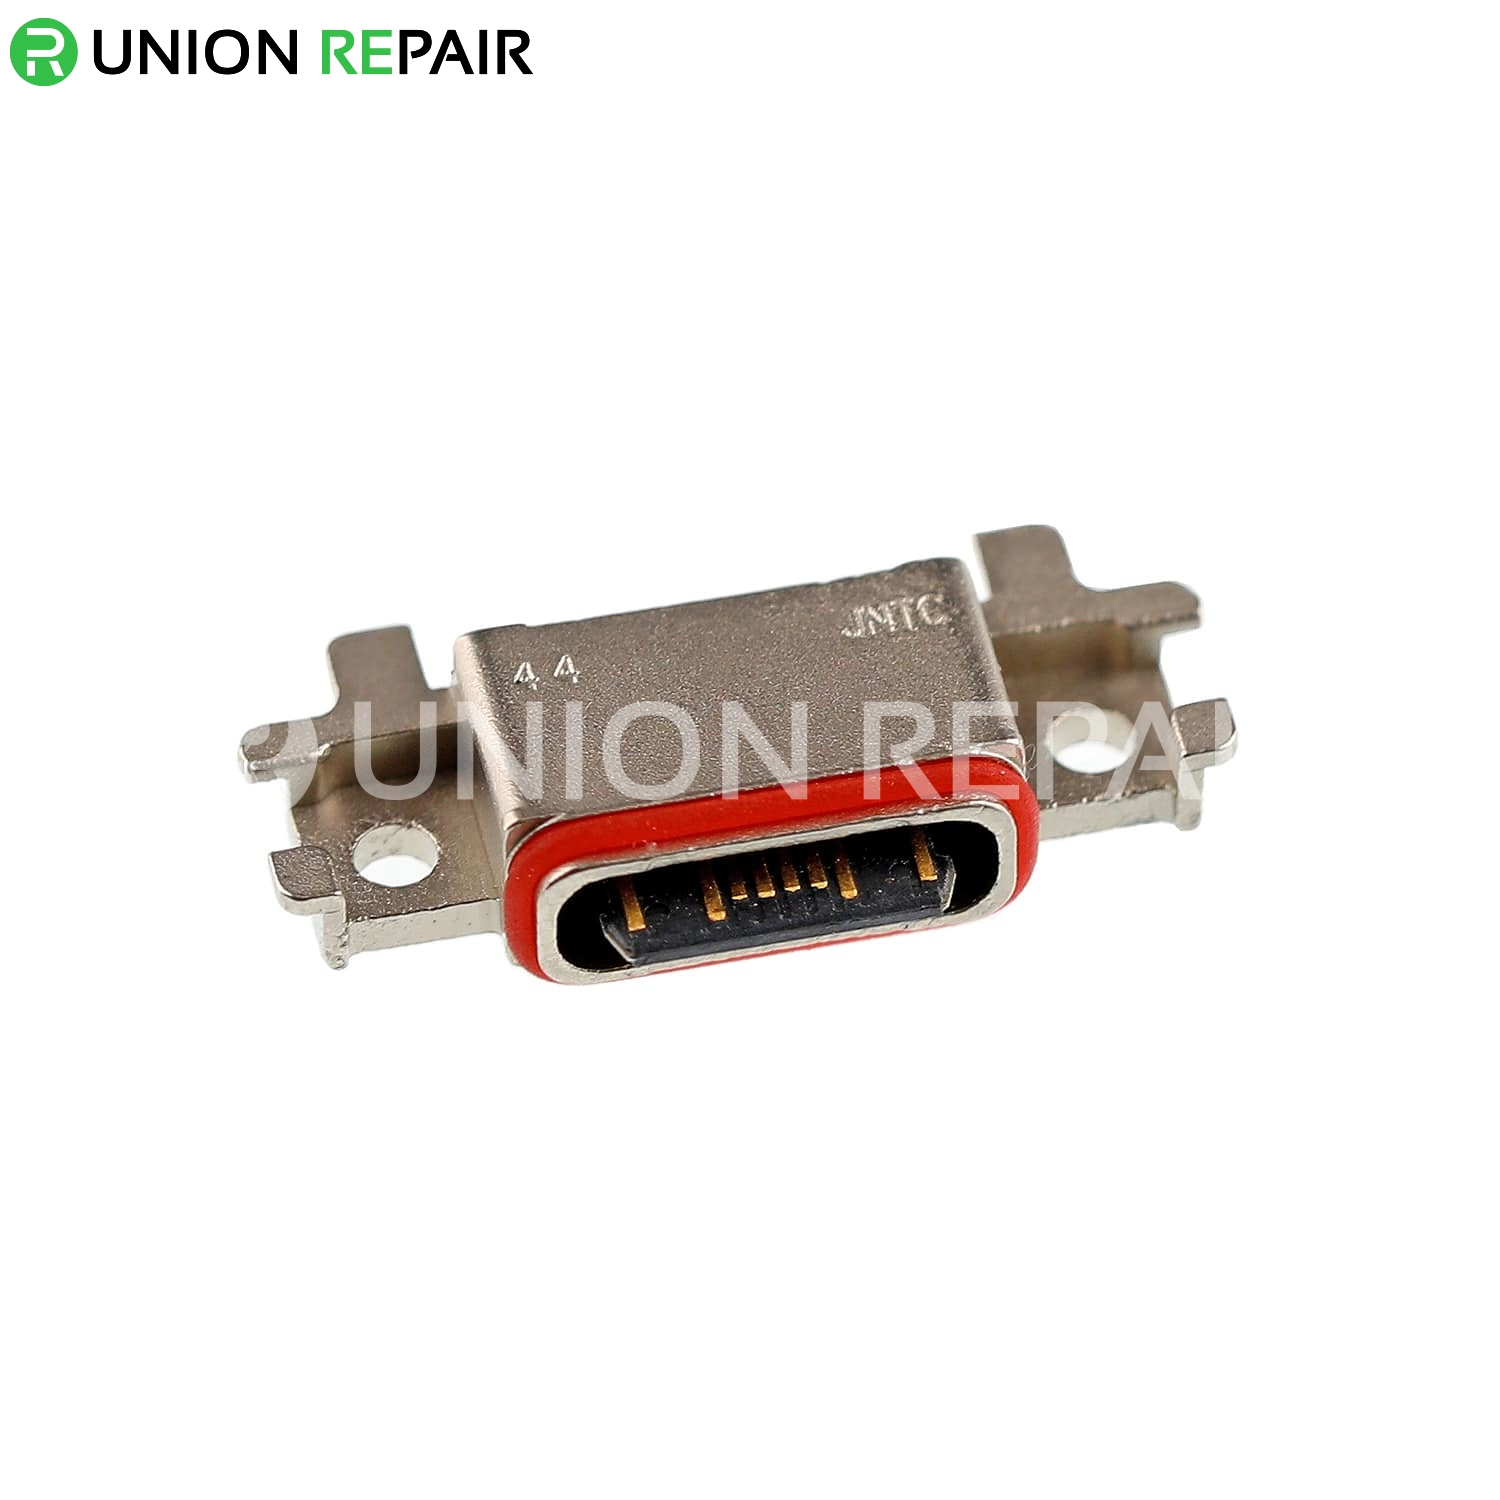 usb kabel samsung a5 2017 ba falcon ignition switch wiring diagram replacement for galaxy sm 520 charging 16759 port 1 jpg t 1541011437